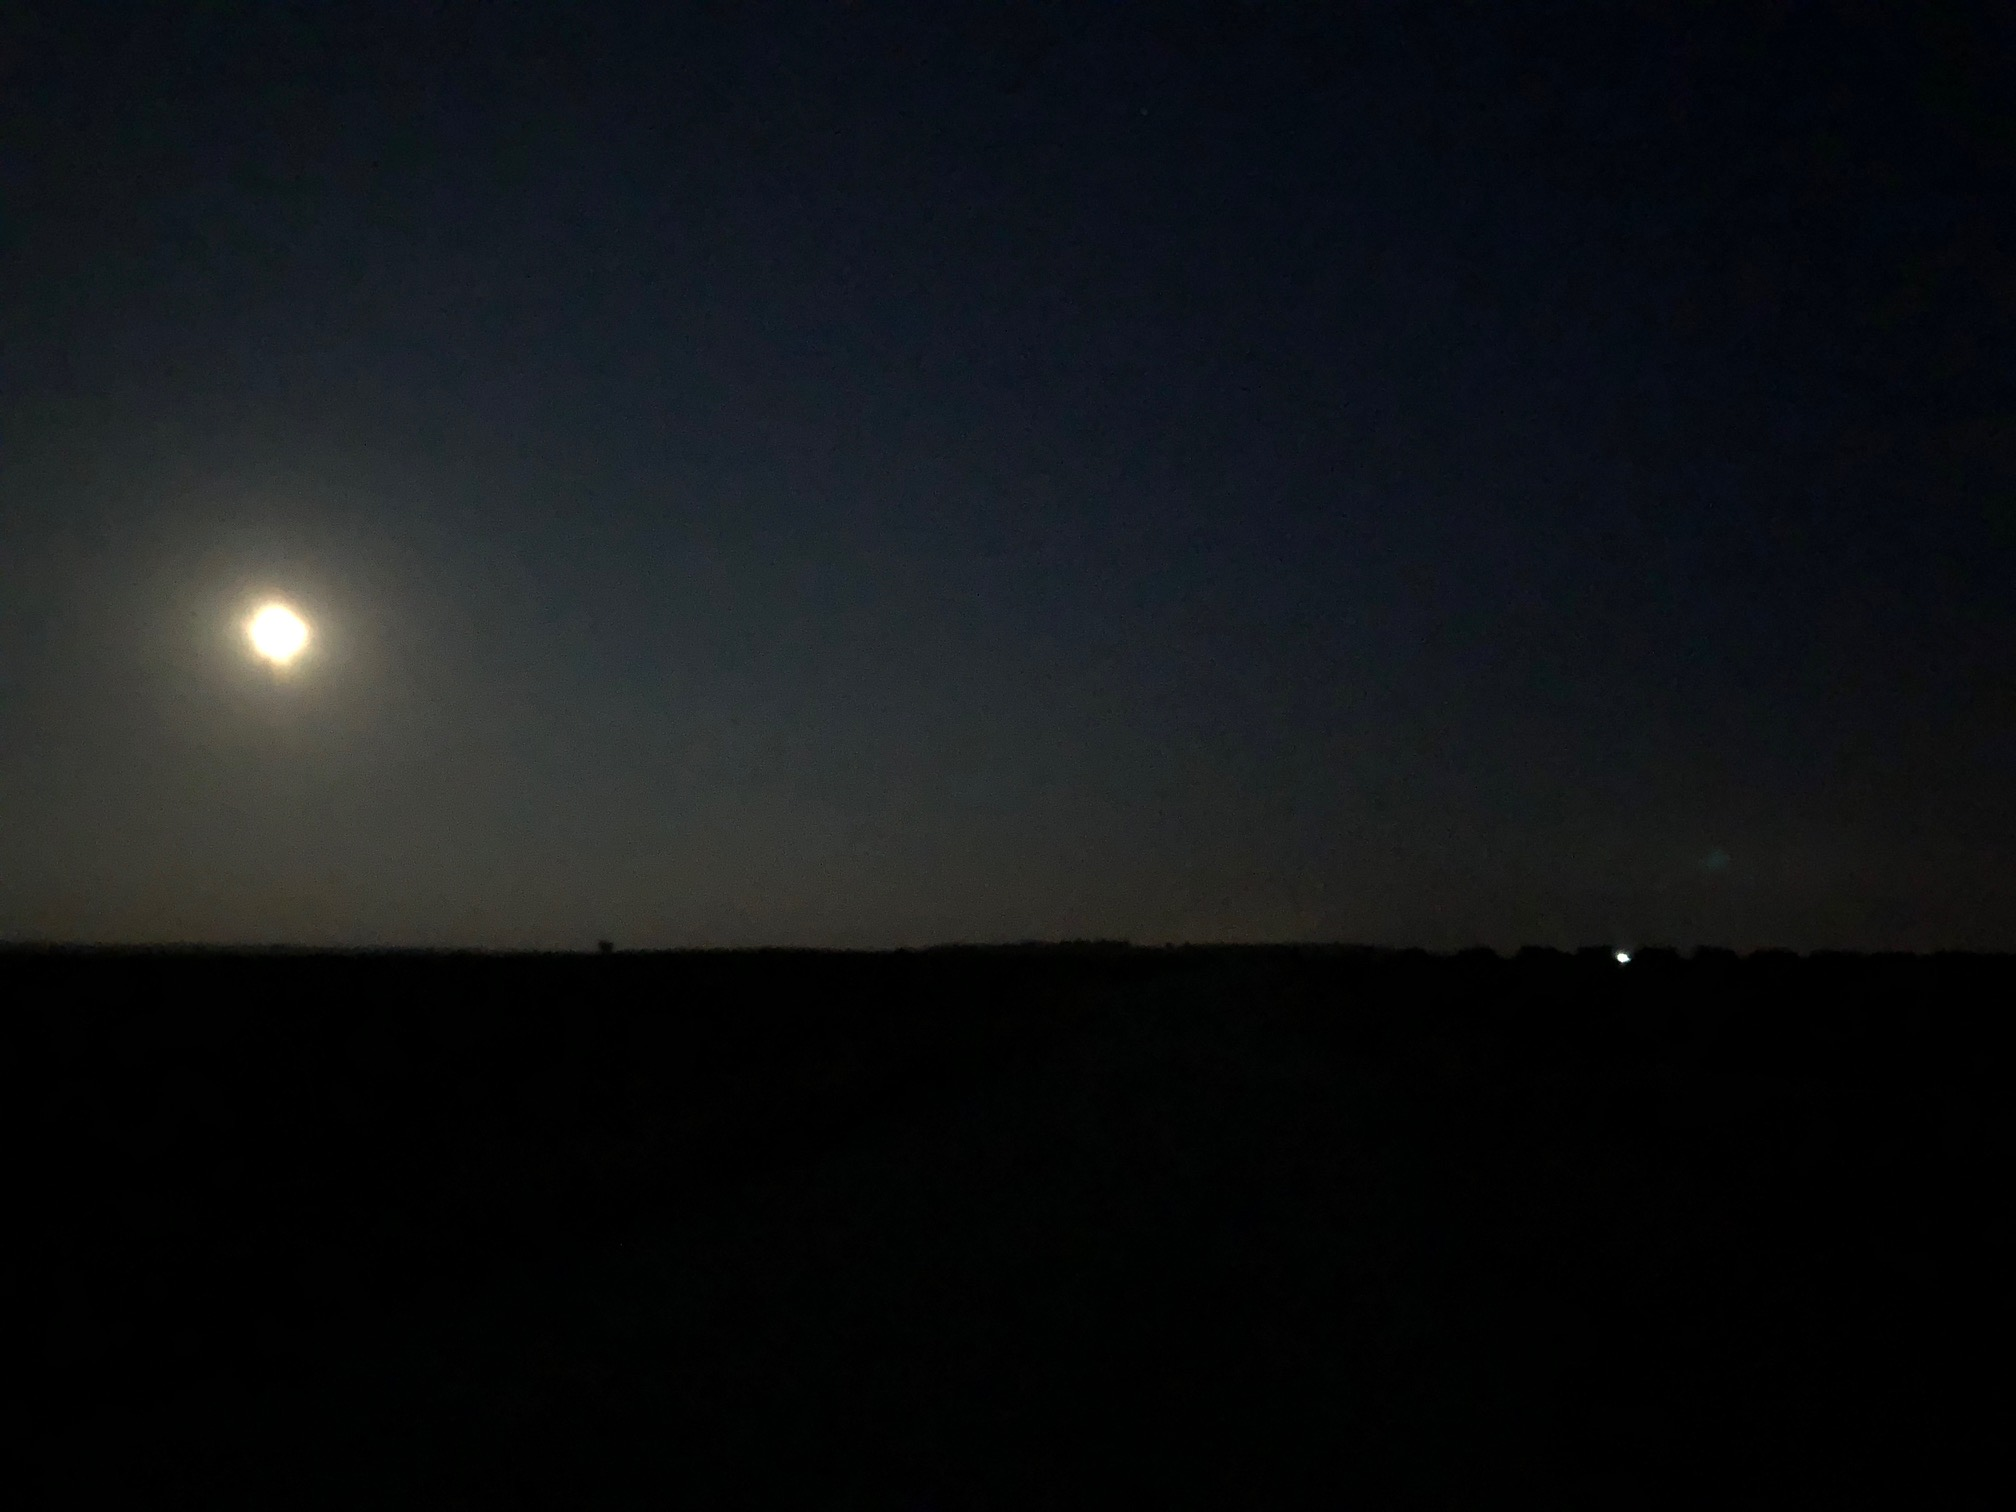 WALKING IN THE THE LIGHT OF THE FULL MOON